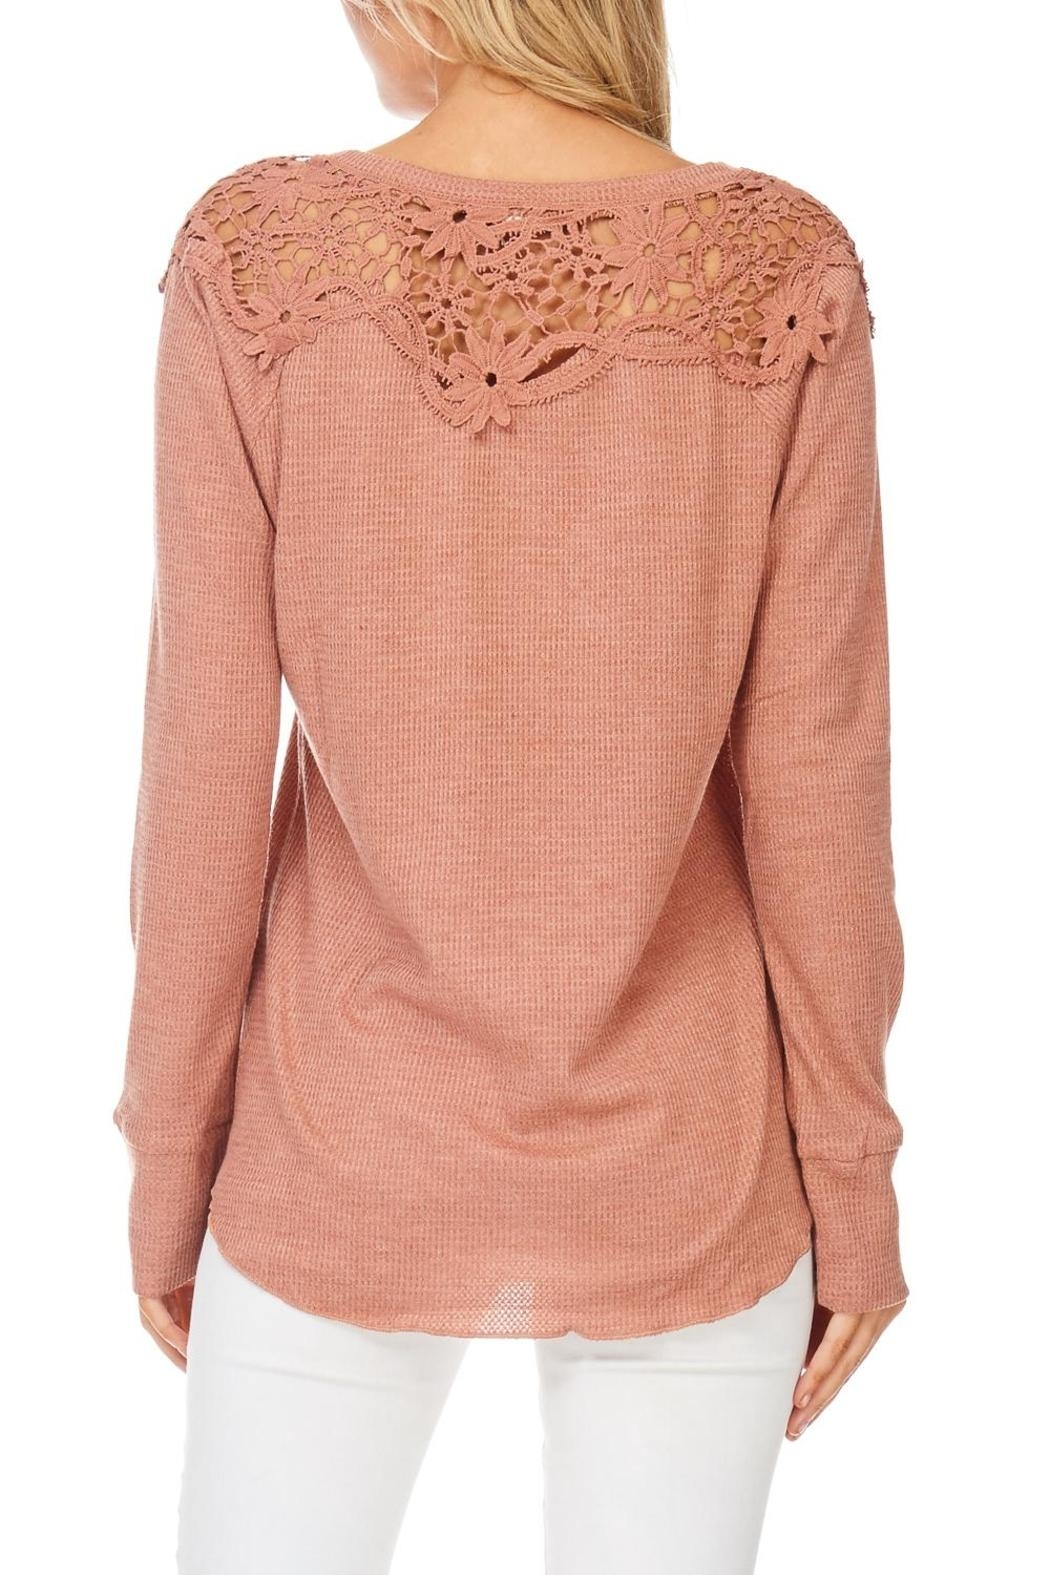 Hem & Thread Blush Lace Shoulder Top - Back Cropped Image